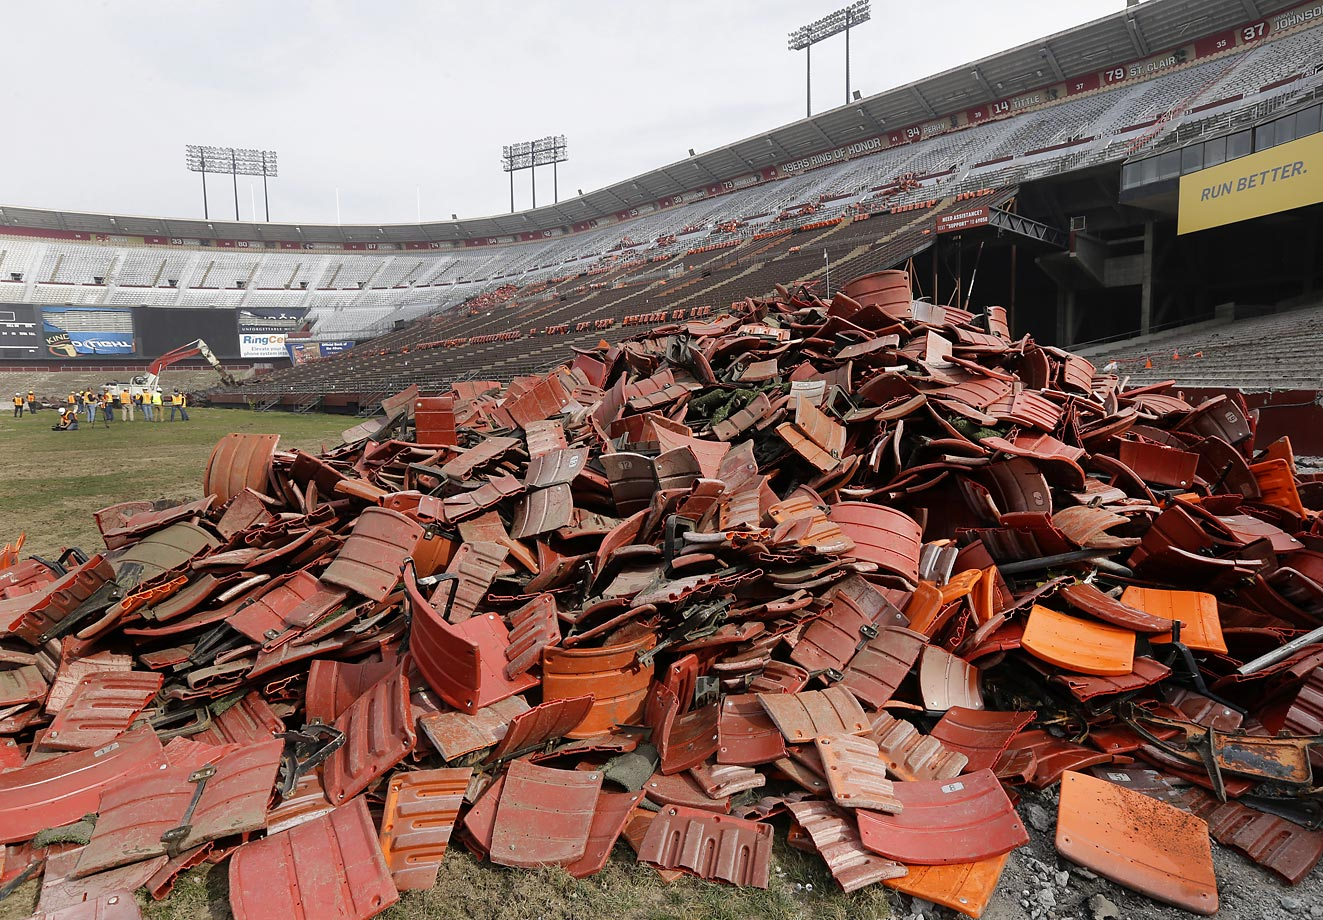 Say goodbye to Candlestick Park. Stadium seats are piled up as demolition continues.